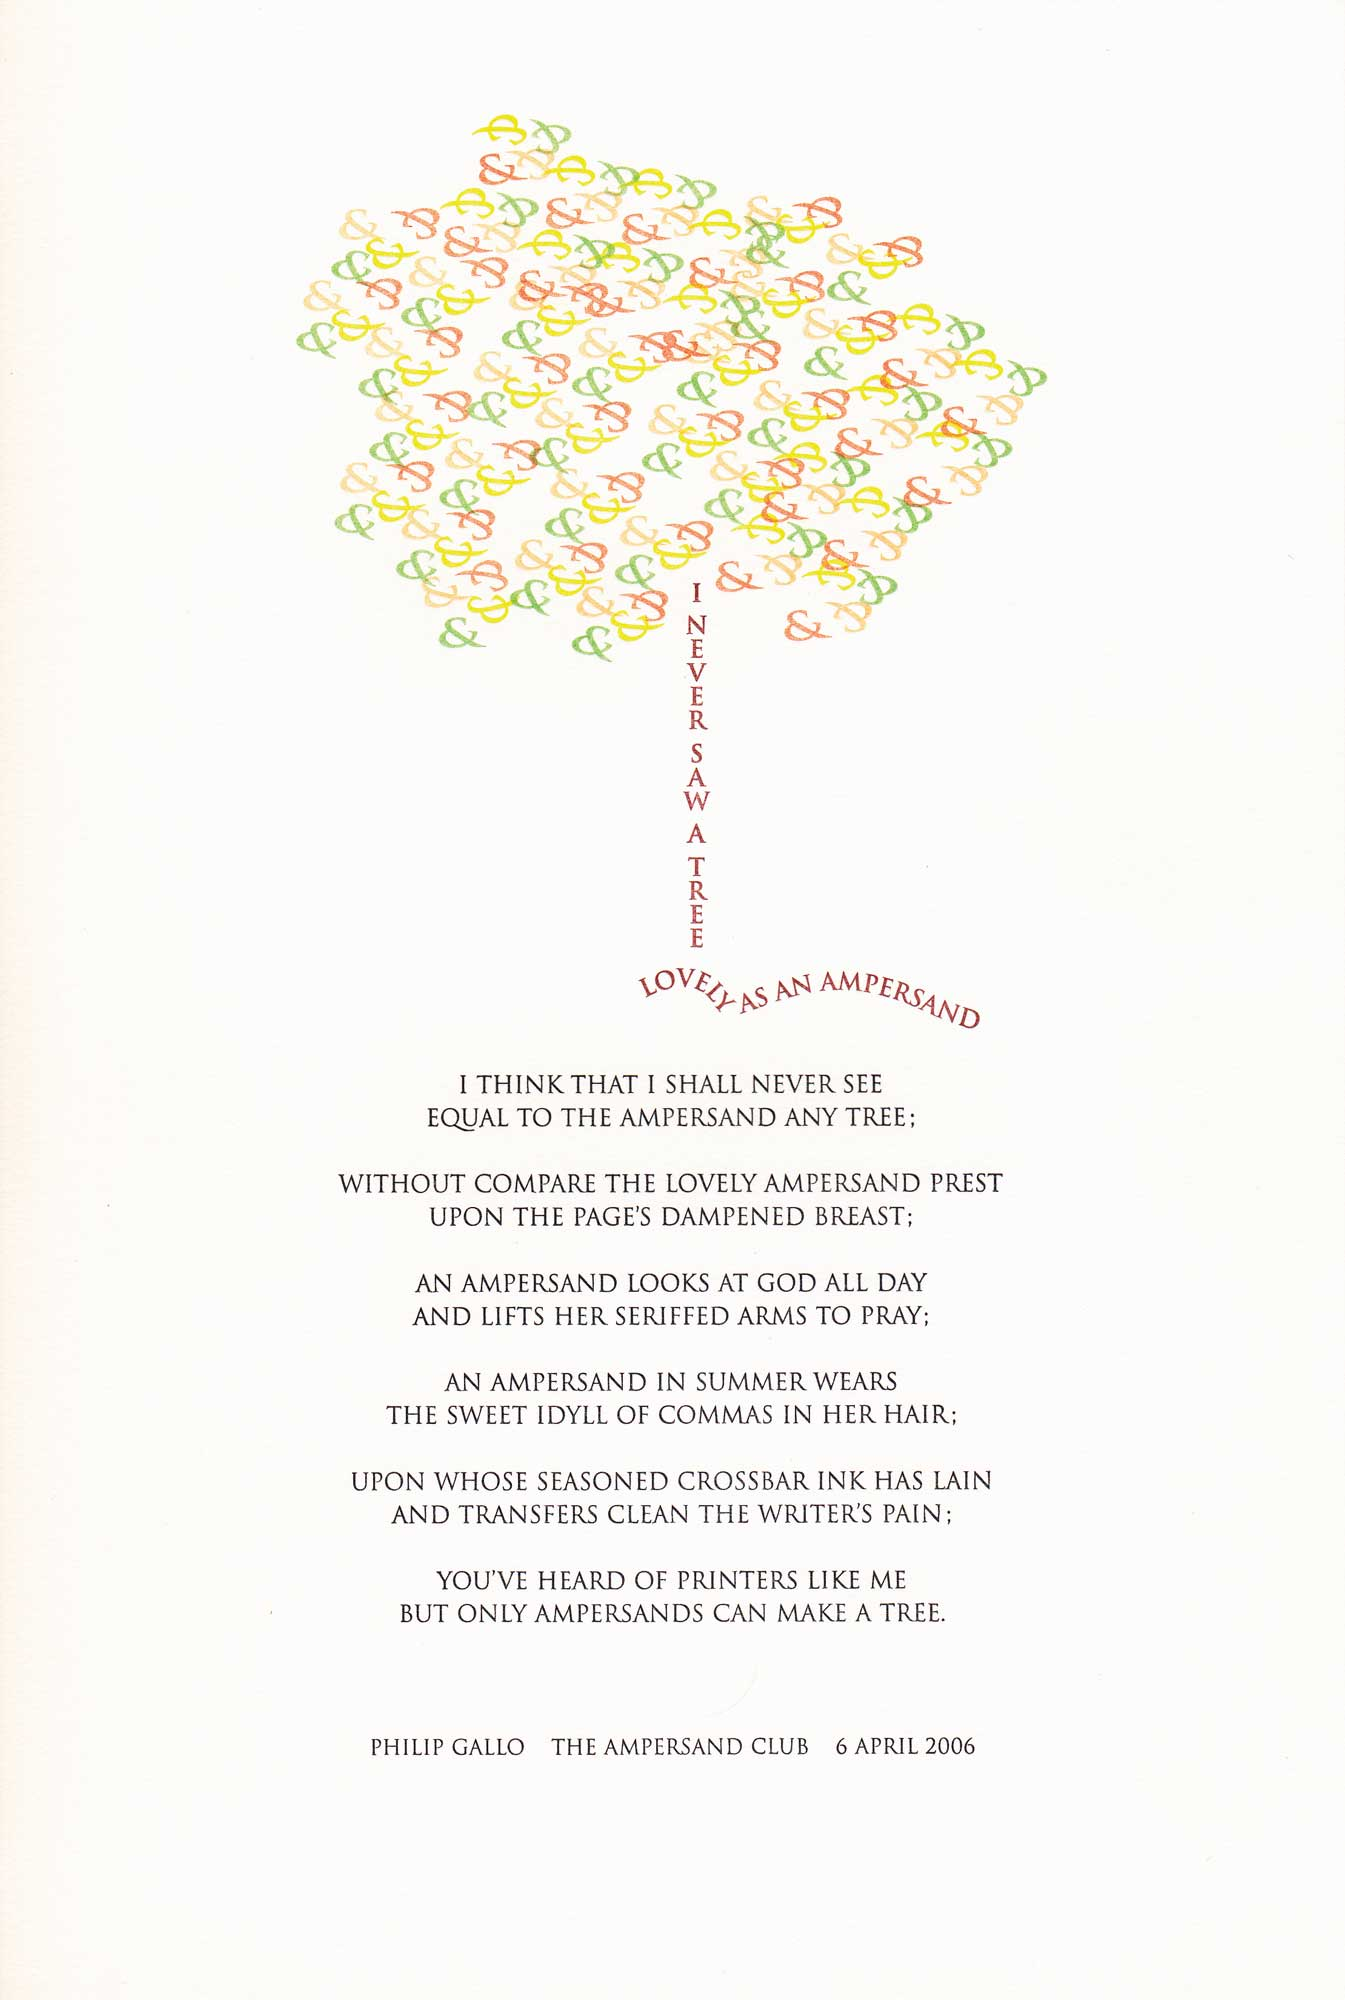 image of broadside by Philip Gallo: I never saw a tree lovely as an ampersand / I think that I shall never see / equal to the ampersand any tree; / without compare the lovely ampersand prest / upon the pages dampened breast; / an ampersand looks at god all day / and lifts her seriffed arms to pray; / an ampersand in summer wears / the sweet idyll of commas in her hair; / upon whose seasoned crossbar ink has lain / and transfers clean the writer's pain; / you've heard of printers like me / but only ampersands can make a tree. Philip Gallo, The Ampersand Club, 6 April 2006